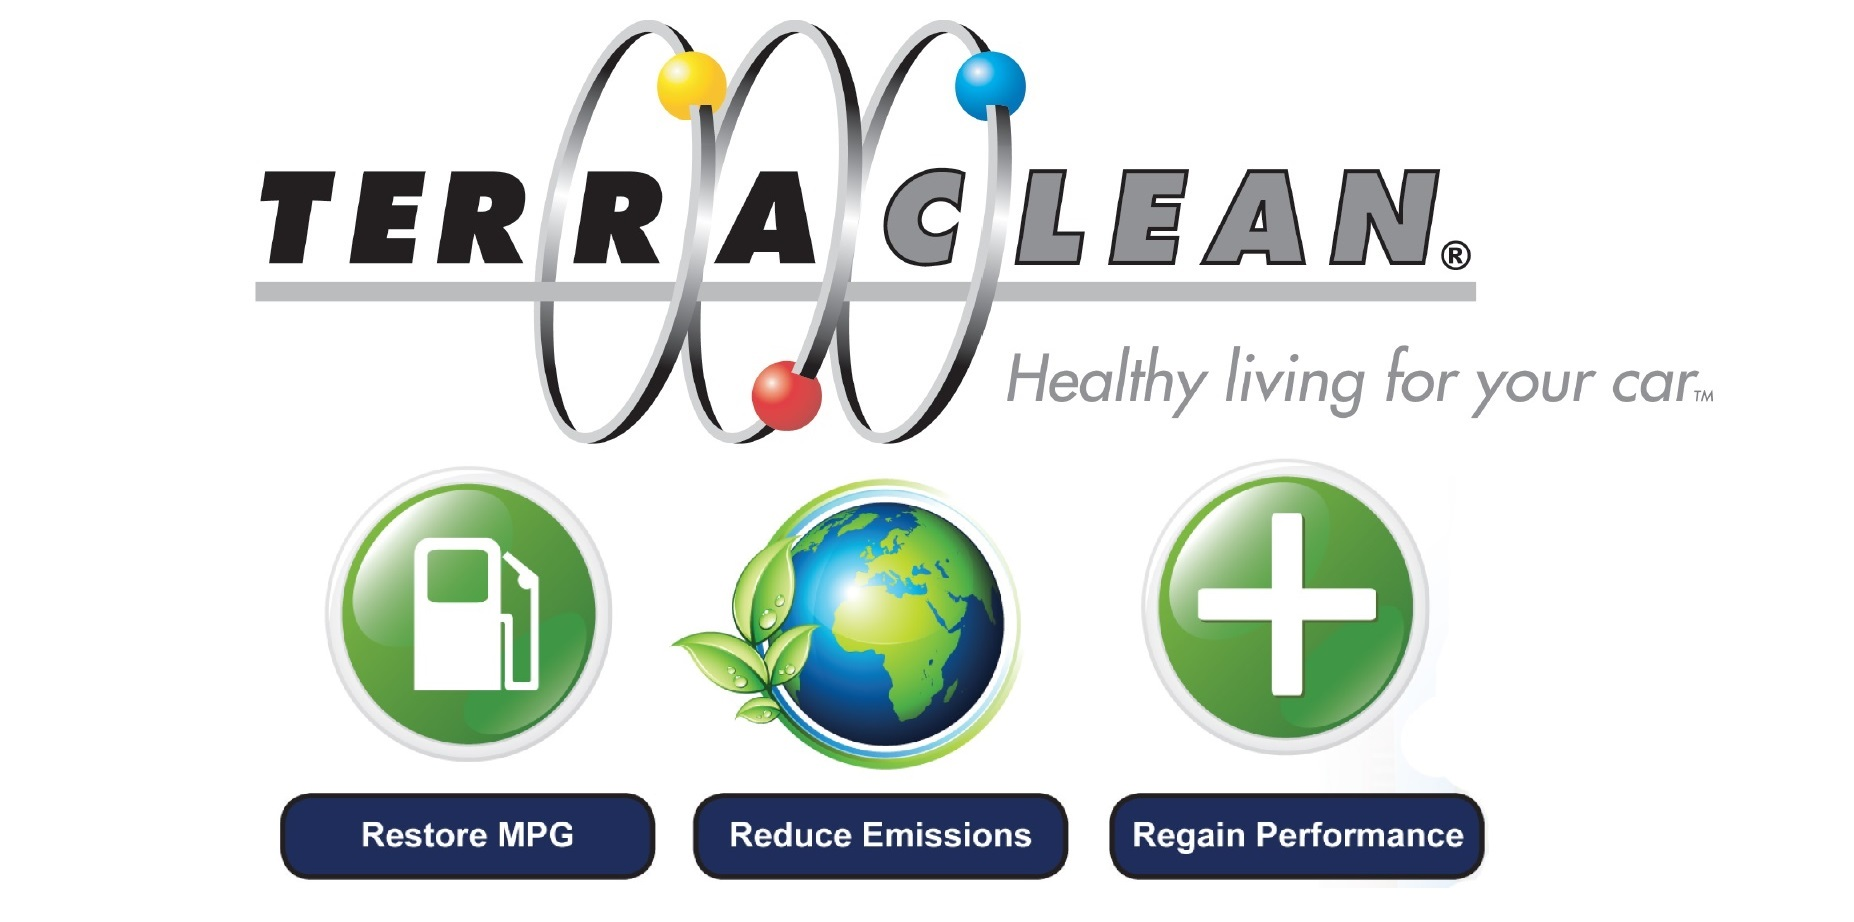 terraclean with logo